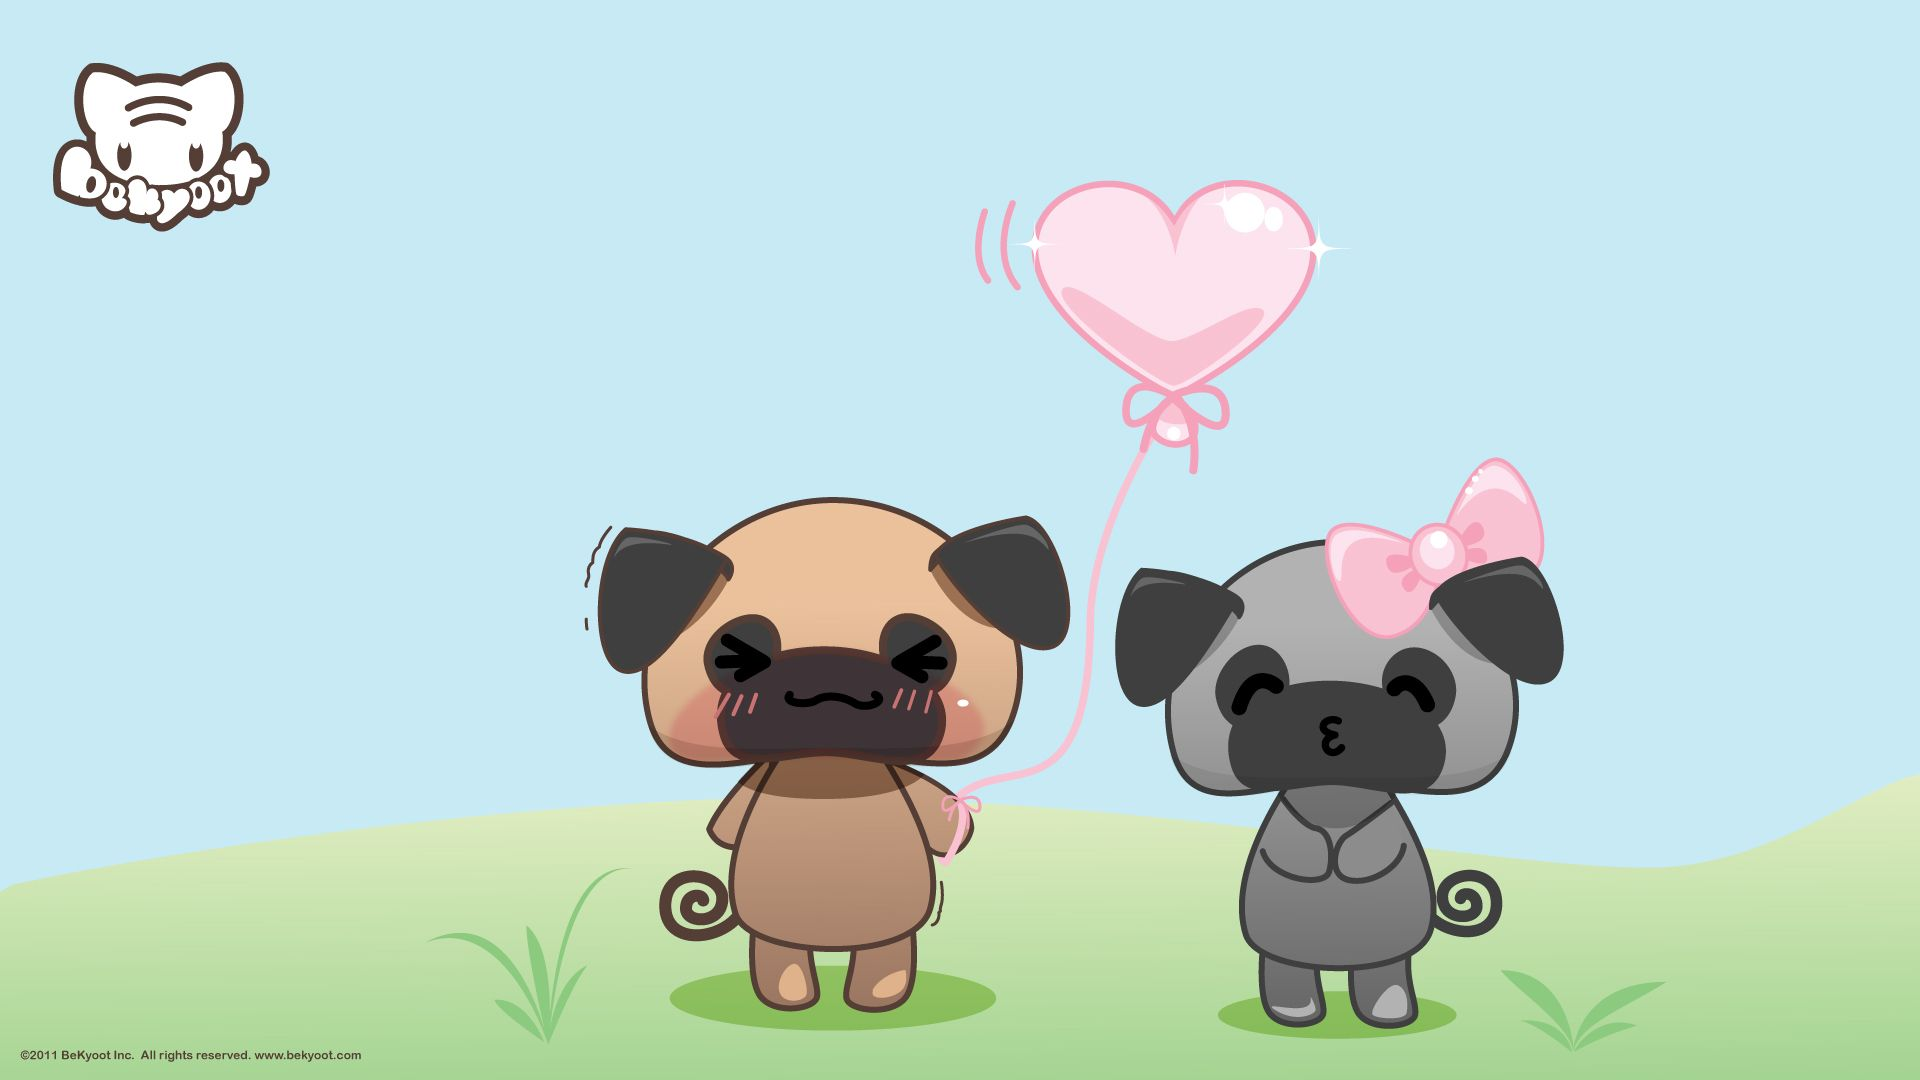 1920x1080 45+] Spring Pug Wallpaper on WallpaperSafari